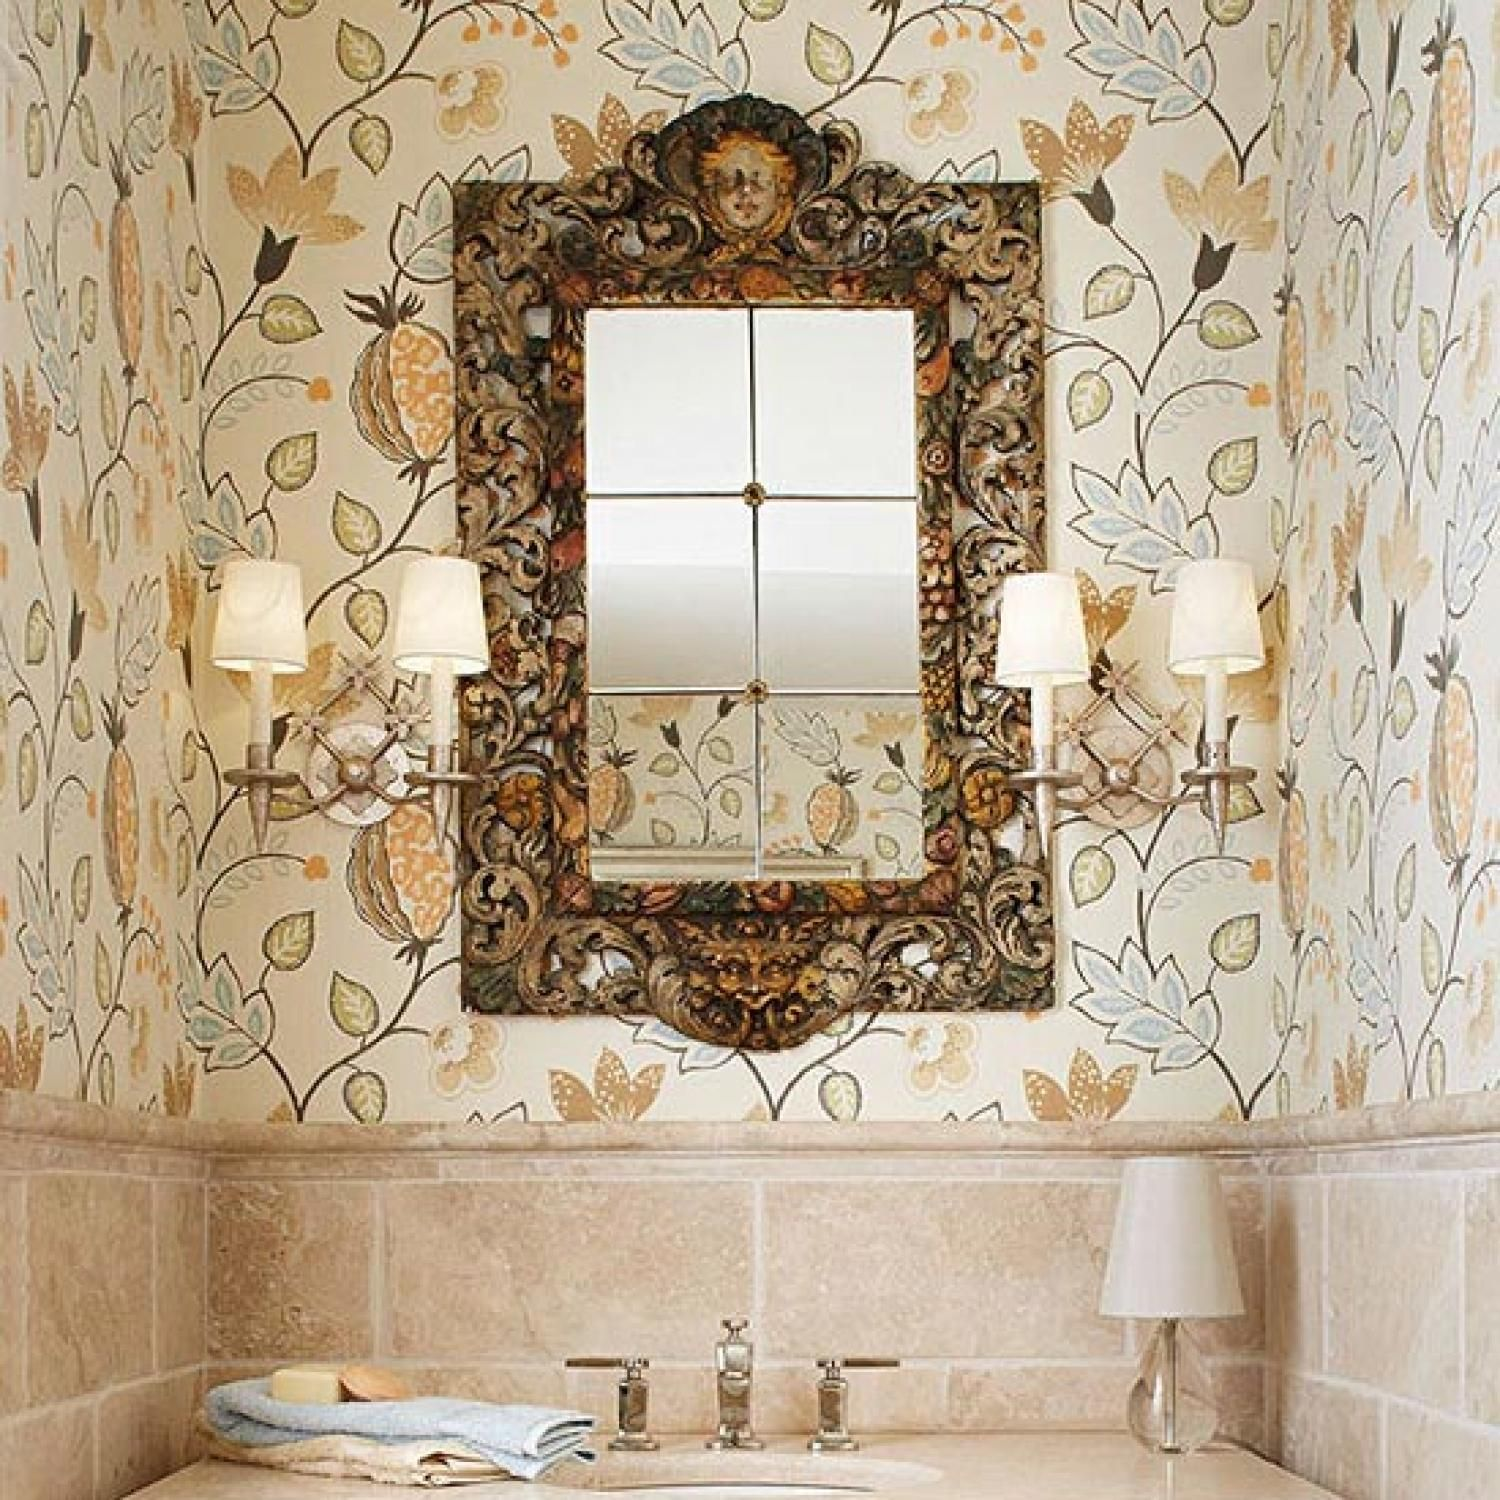 Neutral Colors For Small Powder Rooms: Create A Smashing Powder Room